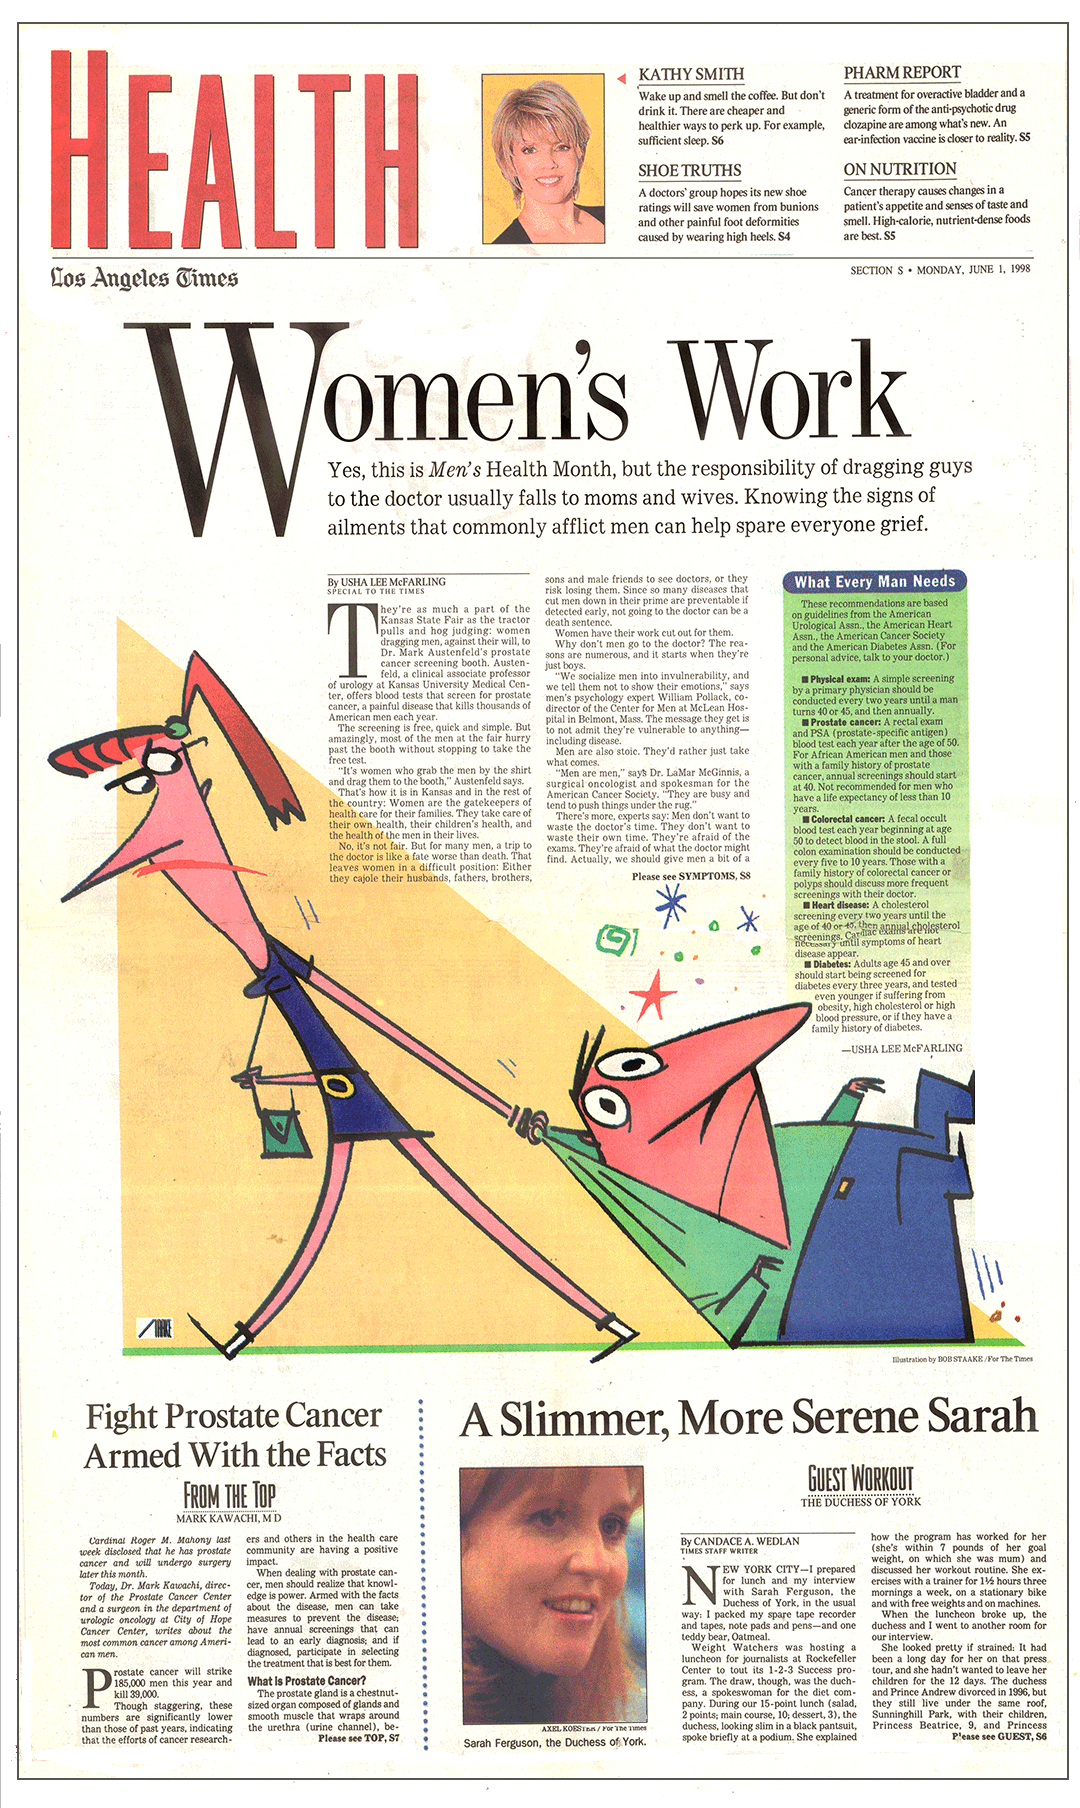 womens work.png